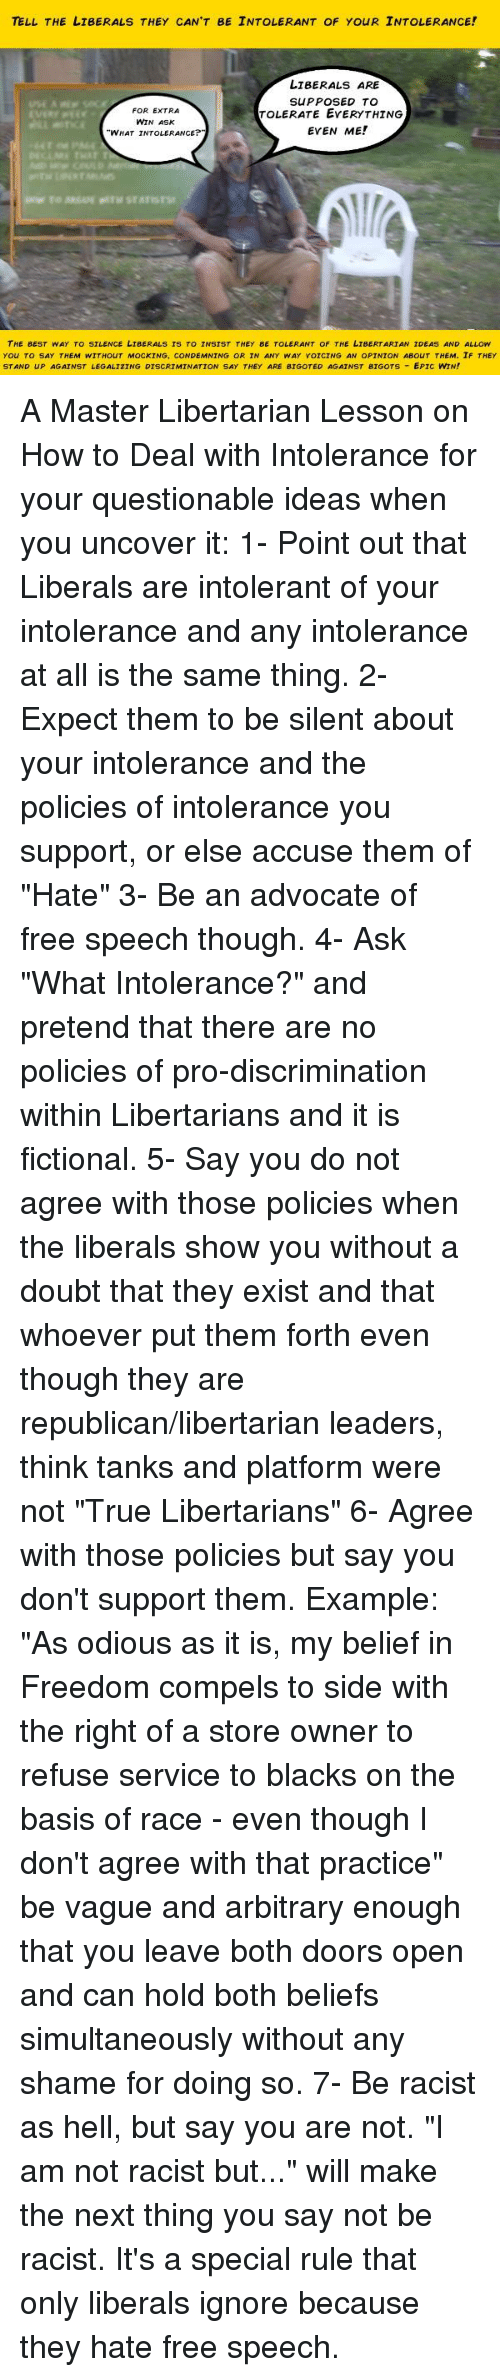 """Epic Winning: TELL THE LIBERALS THEY CAN'T BE INTOLERANT OF YouR INTOLERANCE!  LIBERALS ARE  SUPPOSED TO  FOR EXTRA  TOLERATE EVERYTHING  WIN ASK  EVEN ME!  """"WHAT INTOLERANCE?  THE BEST WAY TO SILENCE LIBERALS Is TO INSIST THEY BE TOLERANT of THE LIBERTARIAN IDEAS AND ALLOW  You TO SAY THEM WITHouT MOCKING. CONDEMNING OR IN ANY WAY YoICING AN QPINION ABouT THEM. IF THEY  STAND UP AGAINST LEGALIZING DISCRIMINATION SAY THEY ARE BIGOTED AGAINST BIGOTS  EPIC WIN! A Master Libertarian Lesson on How to Deal with Intolerance for your questionable ideas when you uncover it:  1- Point out that Liberals are intolerant of your intolerance and any intolerance at all is the same thing.  2- Expect them to be silent about your intolerance and the policies of intolerance you support, or else accuse them of """"Hate""""  3- Be an advocate of free speech though.  4- Ask """"What Intolerance?"""" and pretend that there are no policies of pro-discrimination within Libertarians and it is fictional.  5- Say you do not agree with those policies when the liberals show you without a doubt that they exist and that whoever put them forth even though they are republican/libertarian leaders, think tanks and platform were not """"True Libertarians""""  6- Agree with those policies but say you don't support them. Example:  """"As odious as it is, my belief in Freedom compels to side with the right of a store owner to refuse service to blacks on the basis of race - even though I don't agree with that practice""""  be vague and arbitrary enough that you leave both doors open and can hold both beliefs simultaneously without any shame for doing so.  7- Be racist as hell, but say you are not. """"I am not racist but..."""" will make the next thing you say not be racist. It's a special rule that only liberals ignore because they hate free speech."""